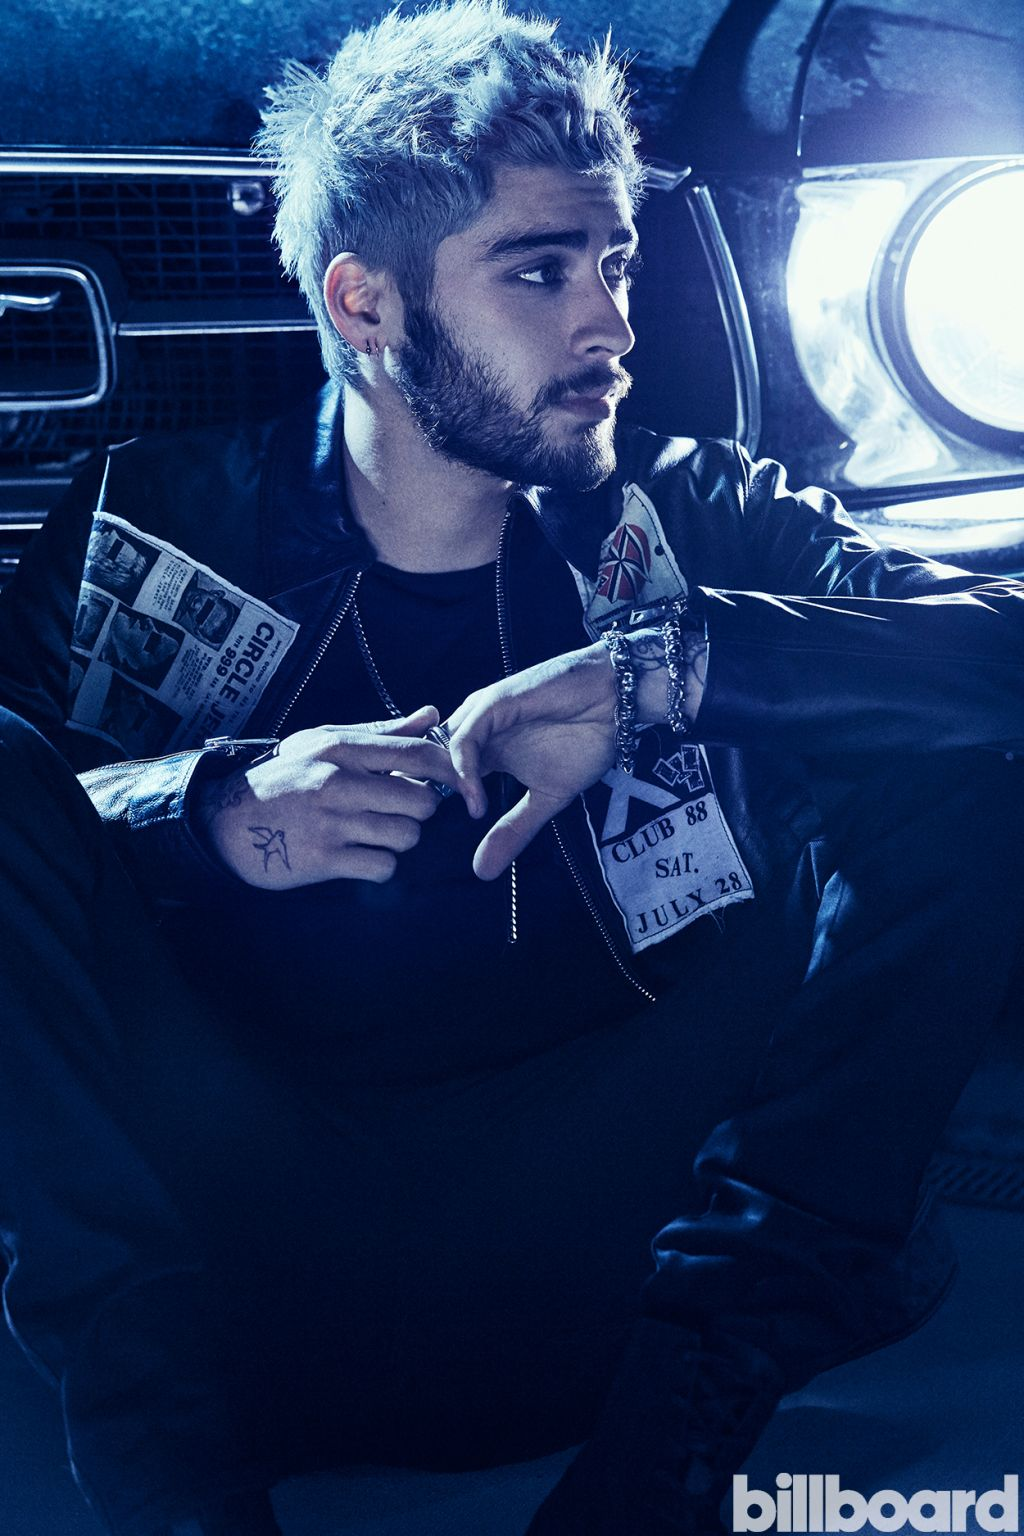 zayn-malik-bb1-2016-billboard-02-1250